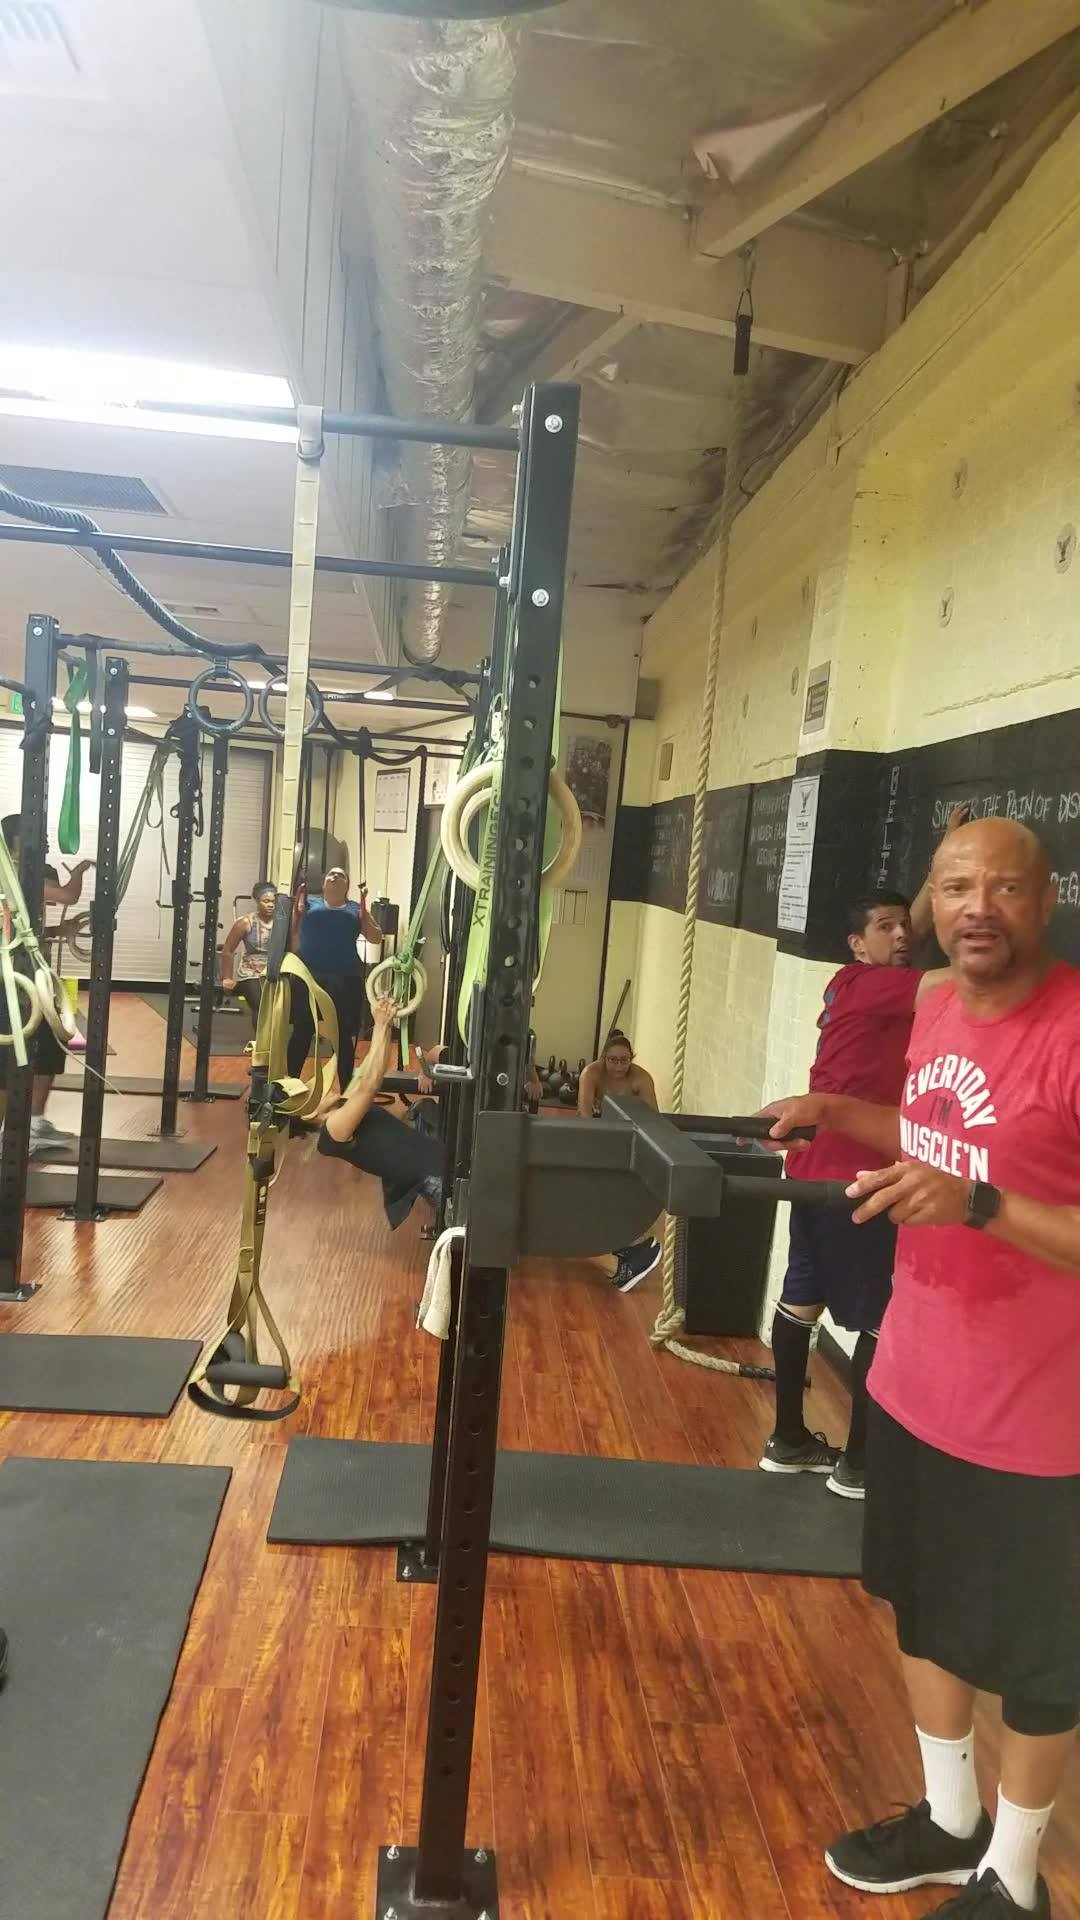 630 class rockin and rollin.. Squatin pullin and dipin.. What are you up to... With coach noble gardner Did you practice today? #acdemyofstrengthandsport #grin_and_grind#crossfit #didyoupracticetoday#loveitliftitdumpit